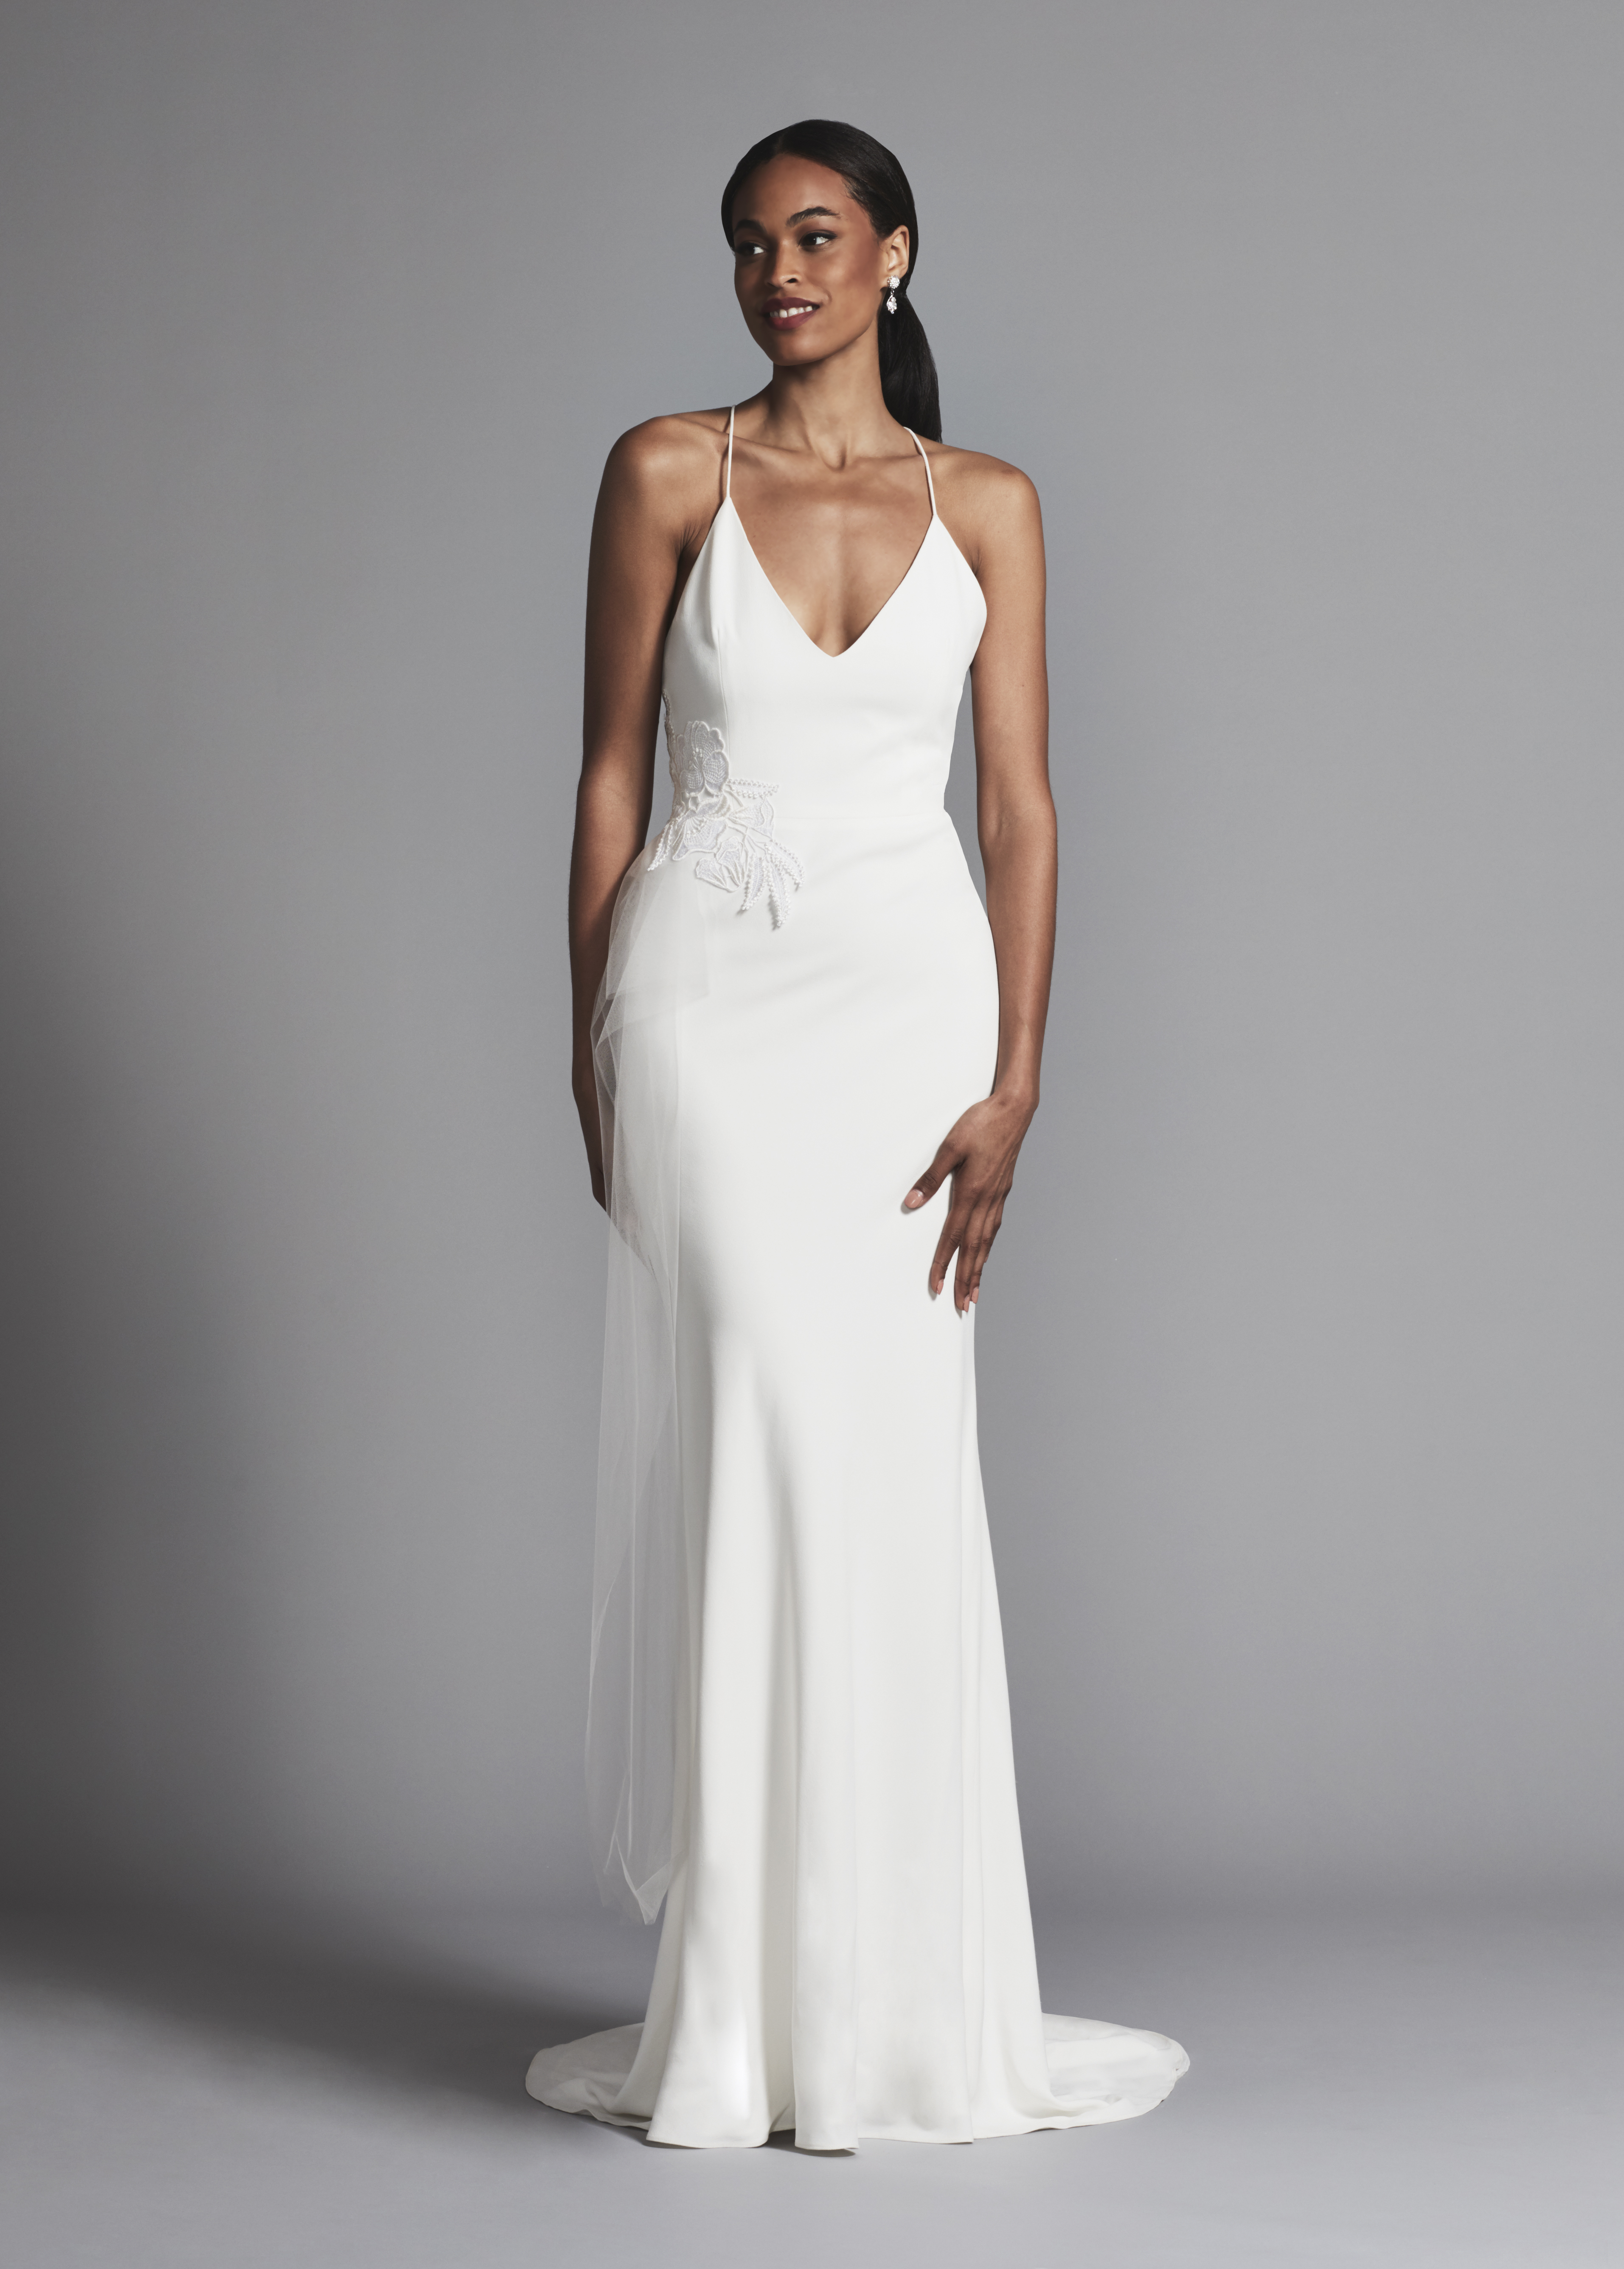 Simple And Chic Spaghetti Strap Crepe Sheath Wedding Dress ...